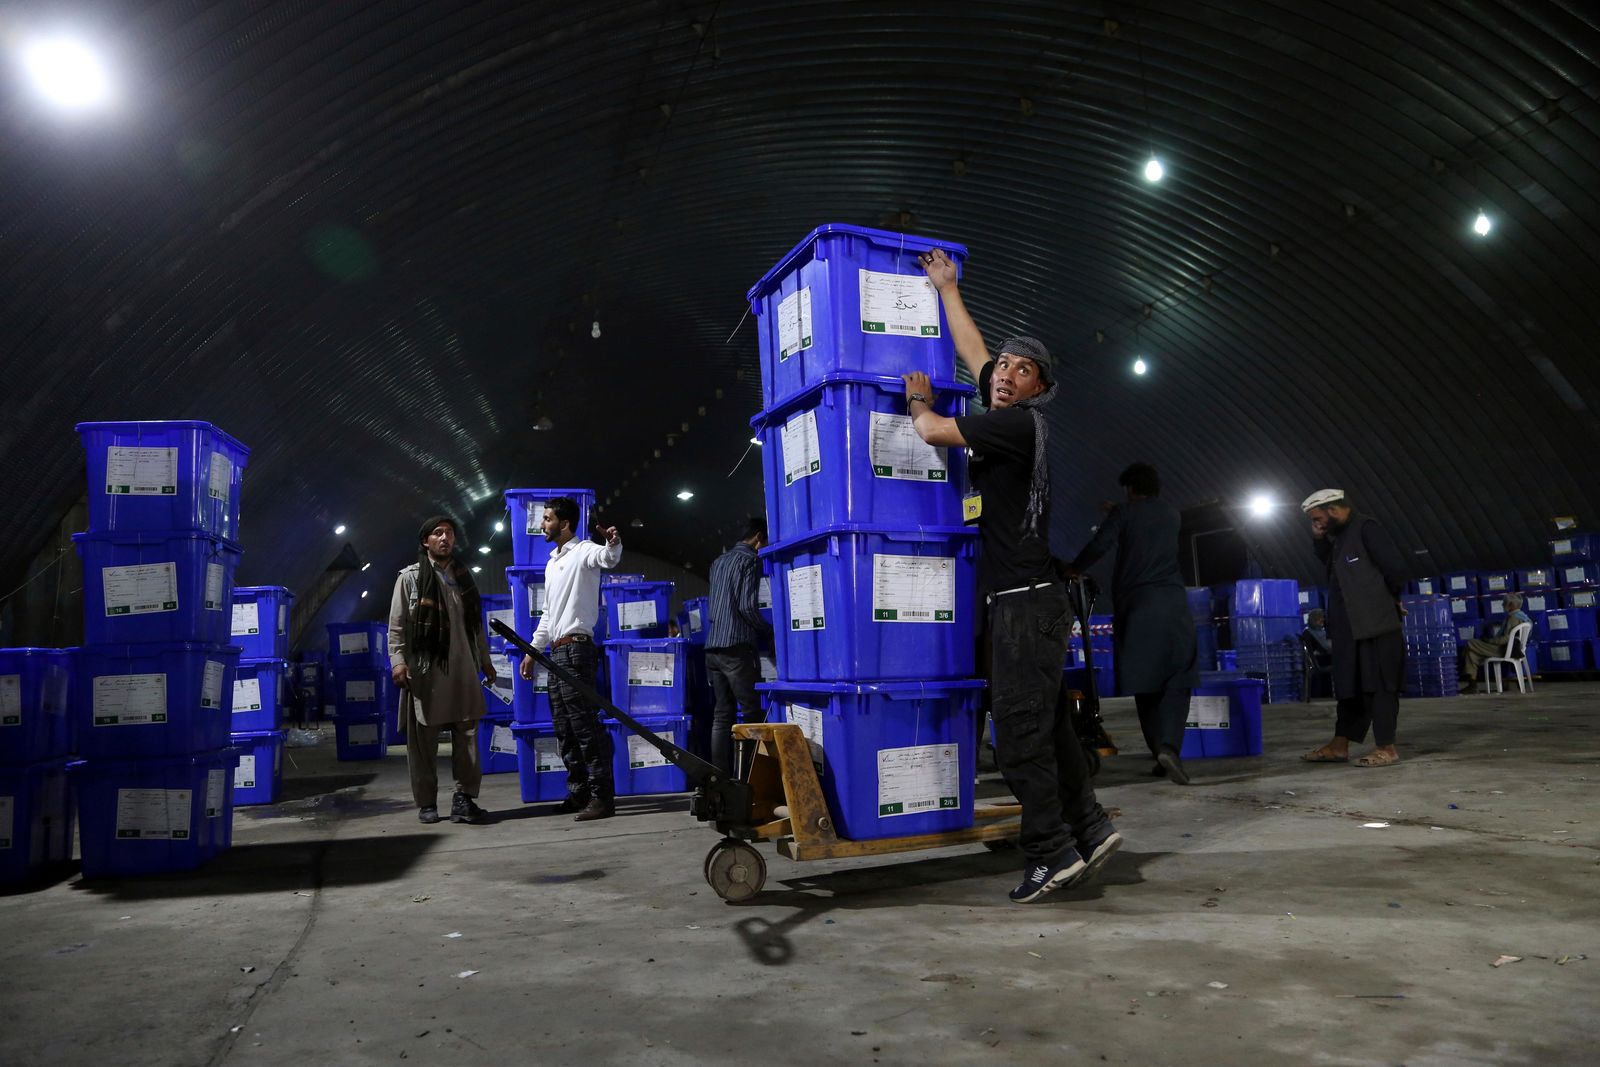 Election commission workers stack ballot boxes in preparation for the presidential election scheduled for Sept. 28, at